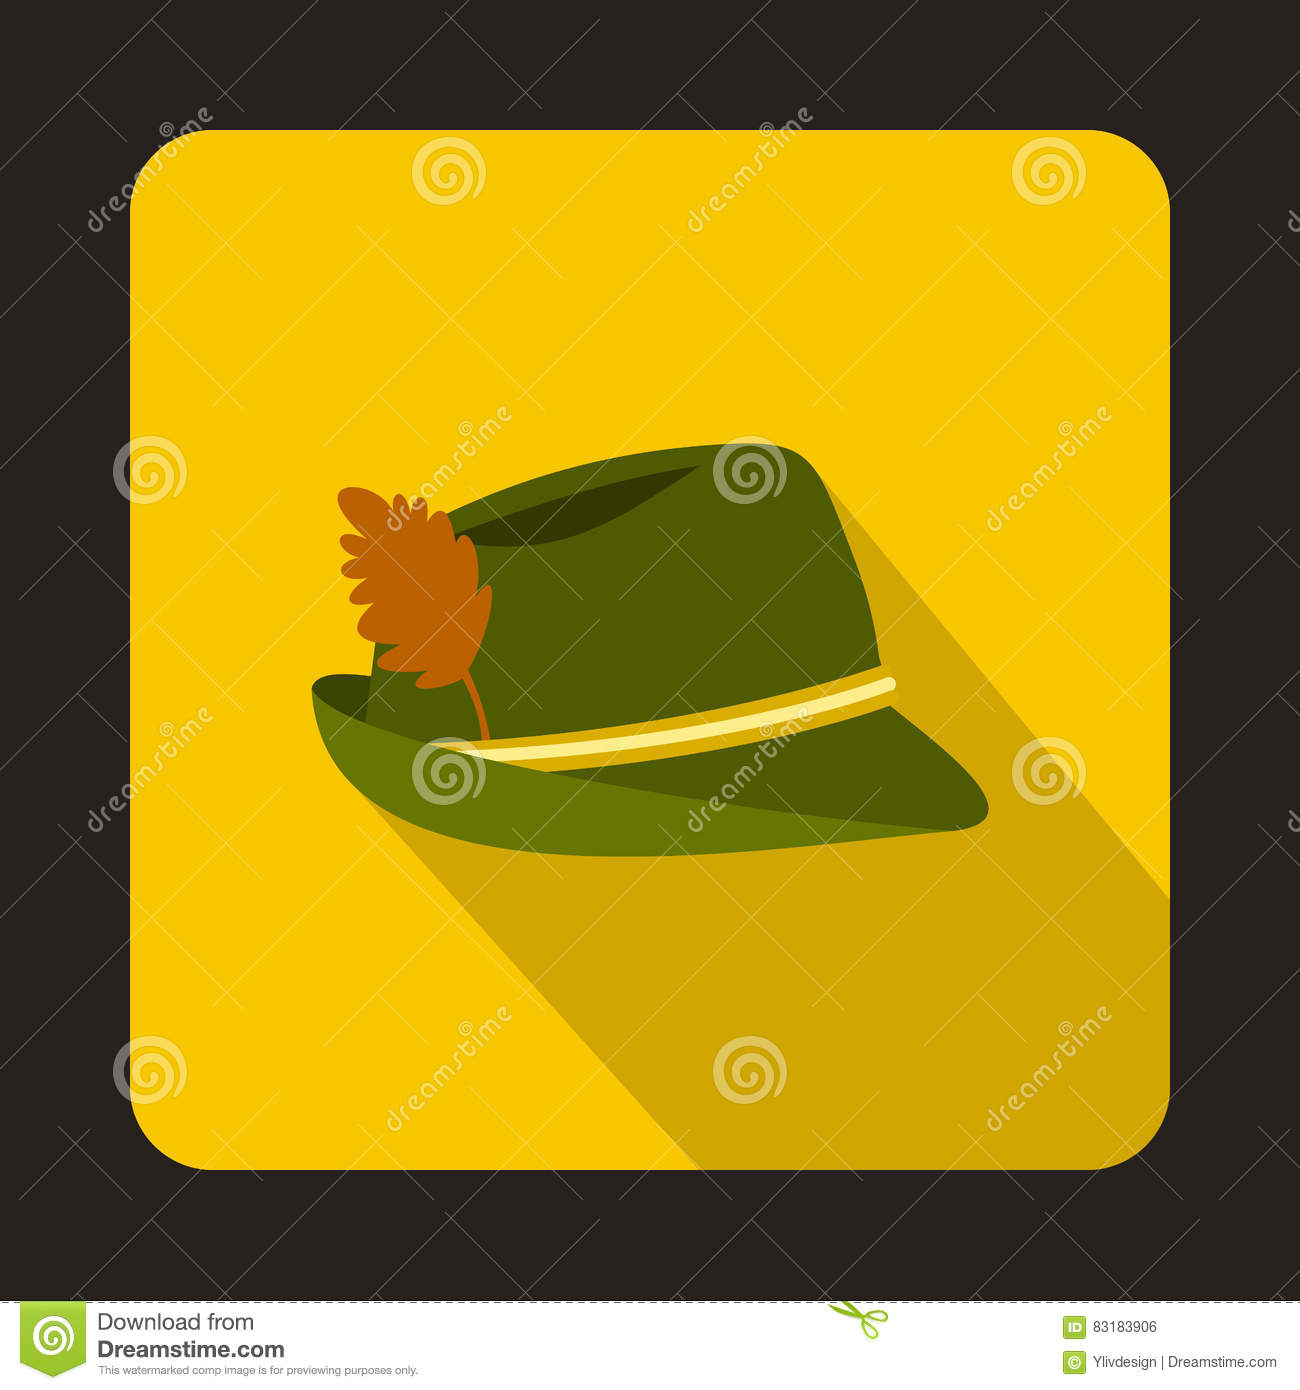 746fe82f572 Oktoberfest tirol hat icon in flat style isolated with long shadow